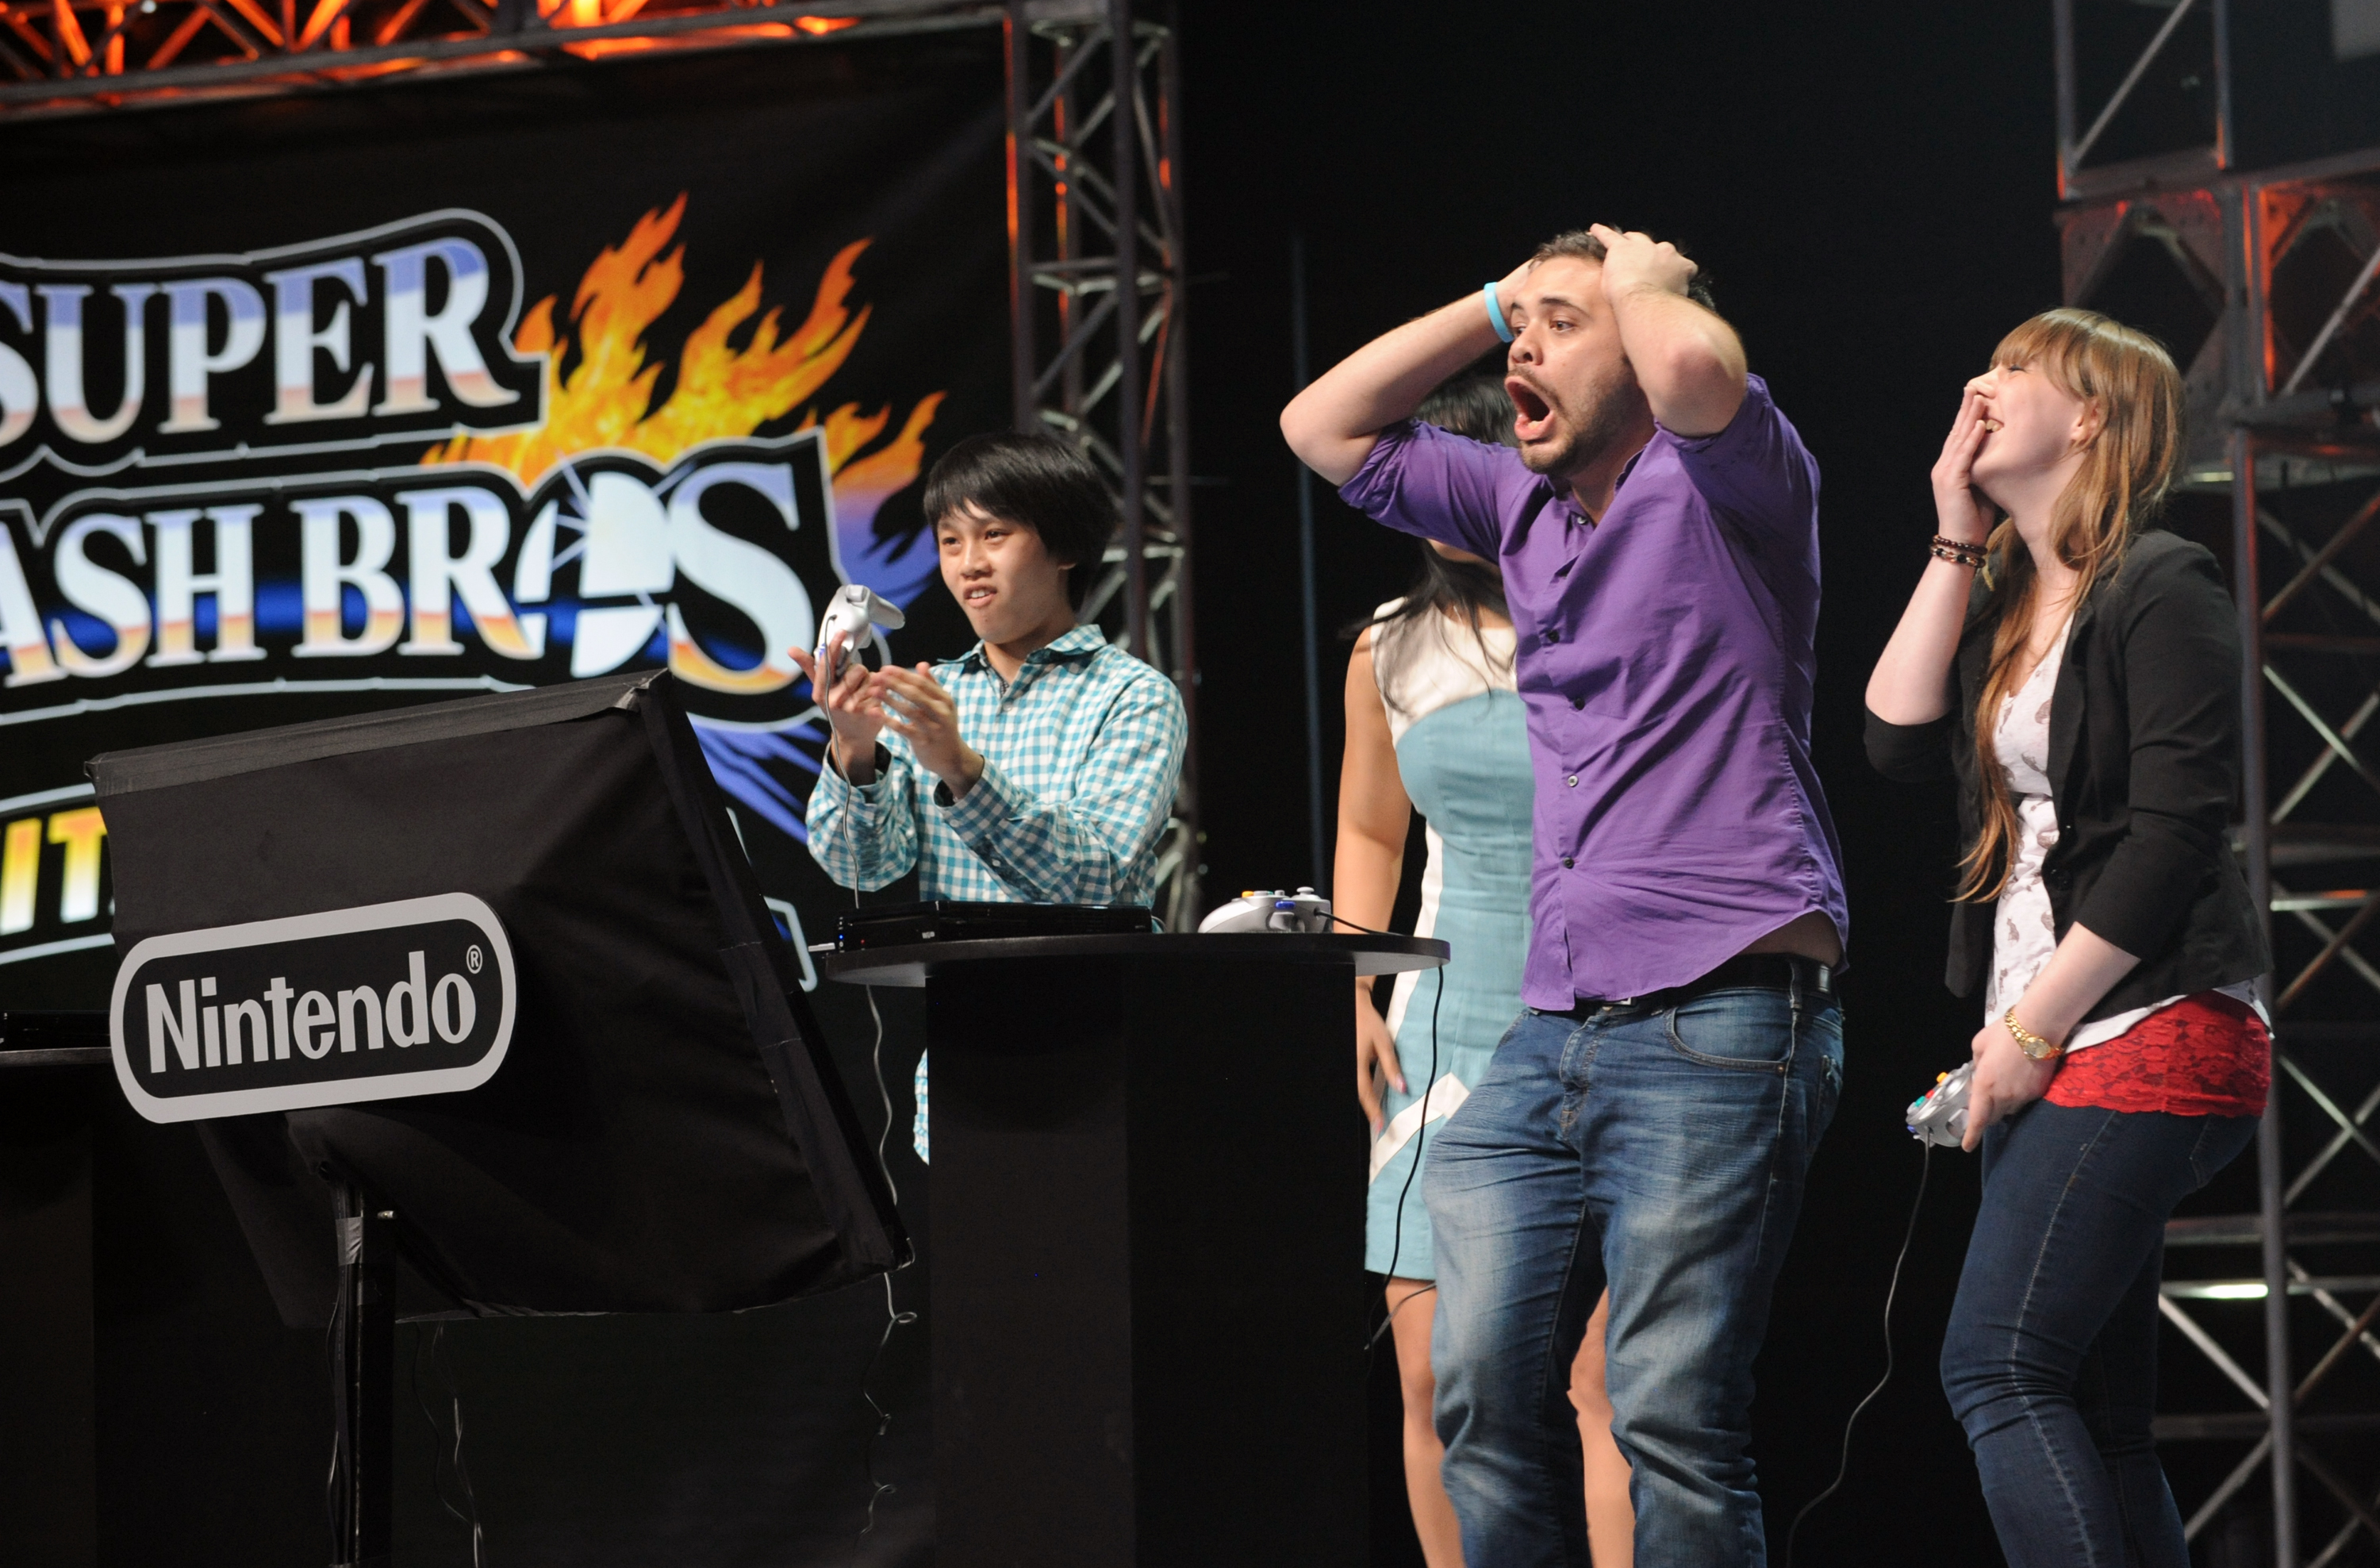 """In this photo provided by Nintendo of America, semi-finalist Juan """"Hungrybox"""" Debiedma of Orlando, Florida reacts to a multiplayer battle at NOKIA Theatre L.A. LIVE in Los Angeles on June 10, 2014, to celebrate the upcoming launches of Nintendo's Super Smash Bros. video games for Nintendo 3DS and Wii U. Thousands of fans in the audience and countless more watching online witnessed new Super Smash Bros. characters clashing with existing favorites in action for the first time. (Photo: Business Wire)"""